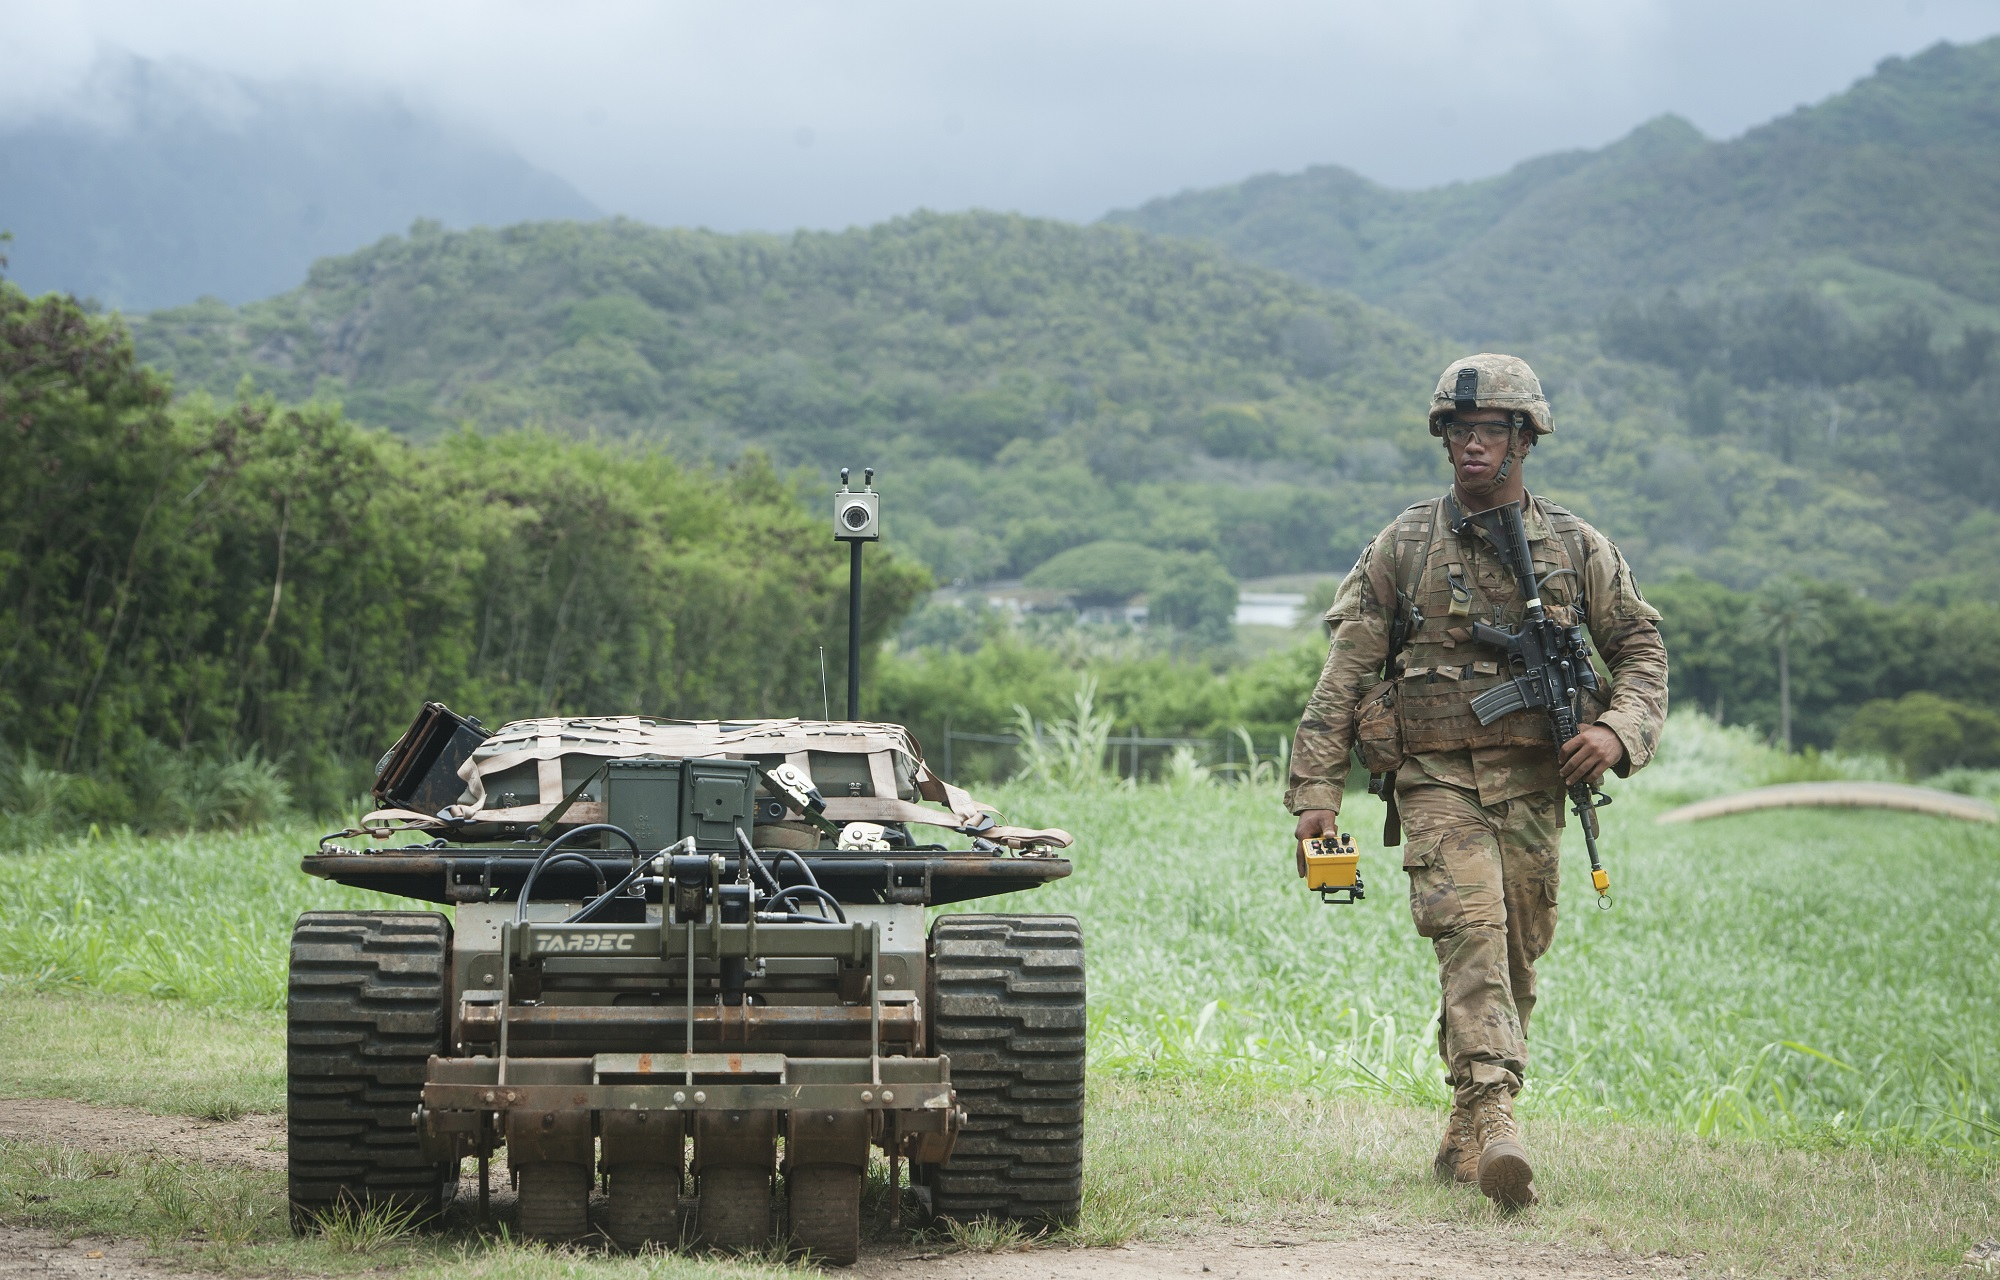 The Army is working on combat-deployable robots